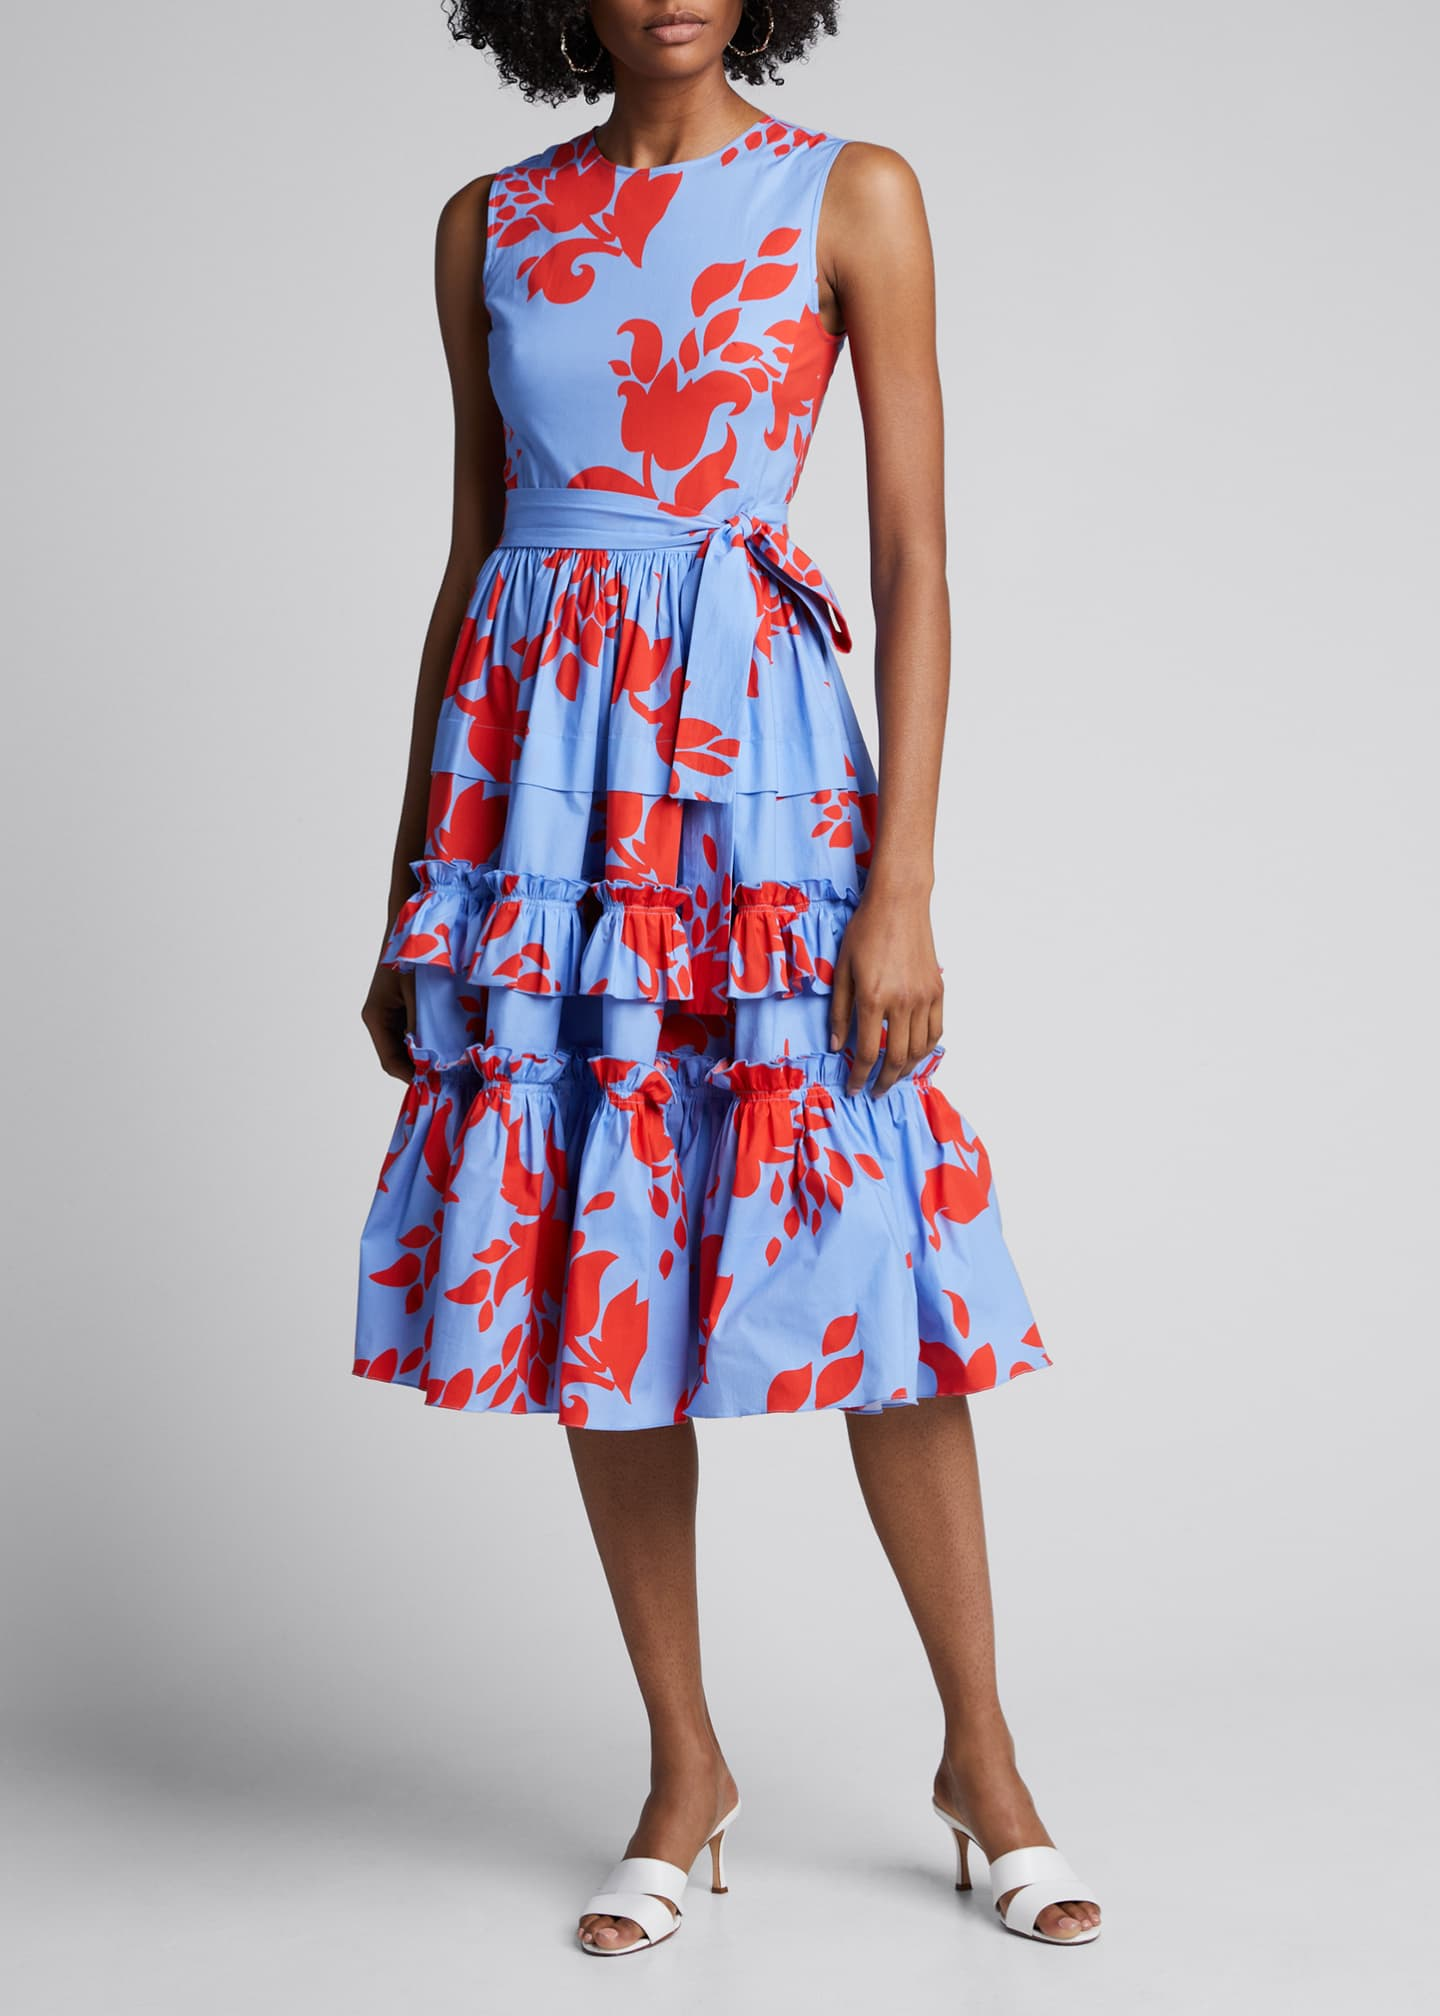 Carolina Herrera Floral-Print Sleeveless Tiered Ruffle Dress